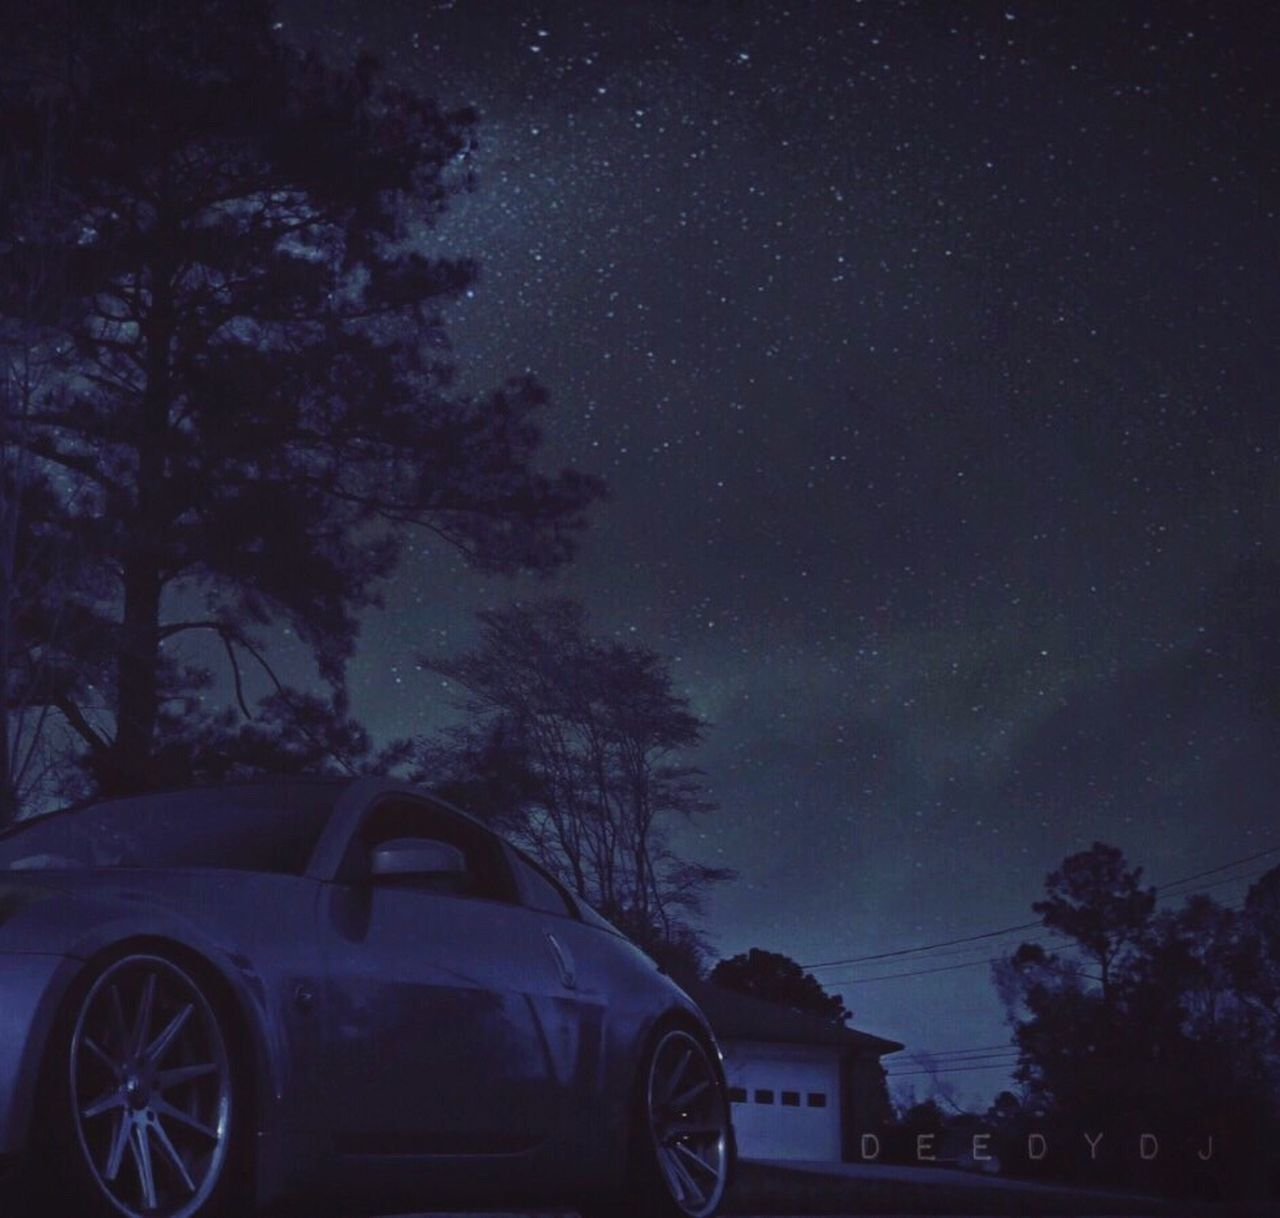 tree, night, car, transportation, nature, star - space, outdoors, sky, no people, land vehicle, beauty in nature, galaxy, astronomy